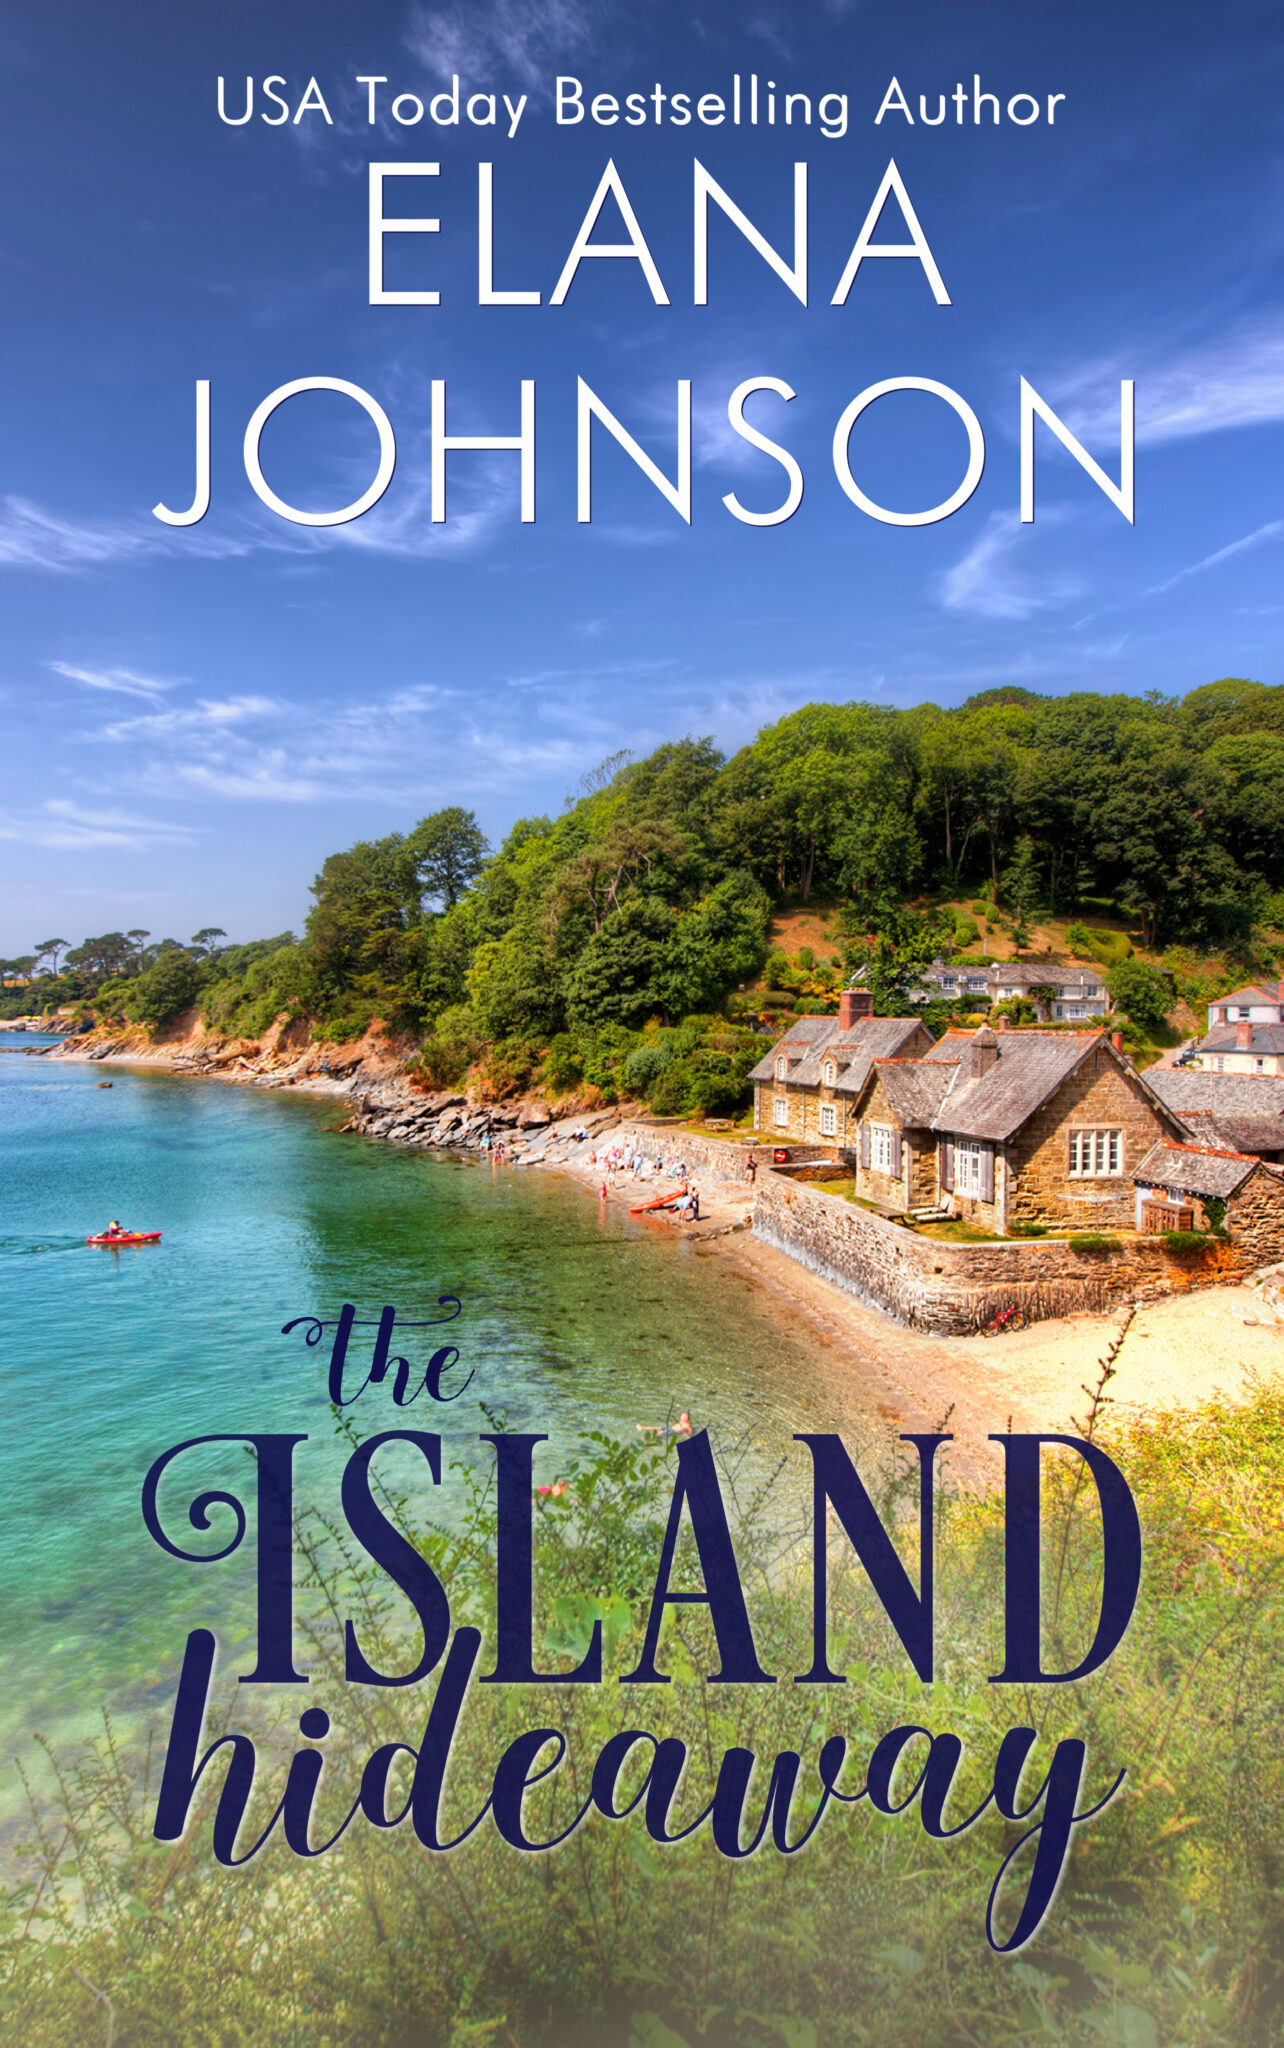 The Island Hideaway NEW Cover copy